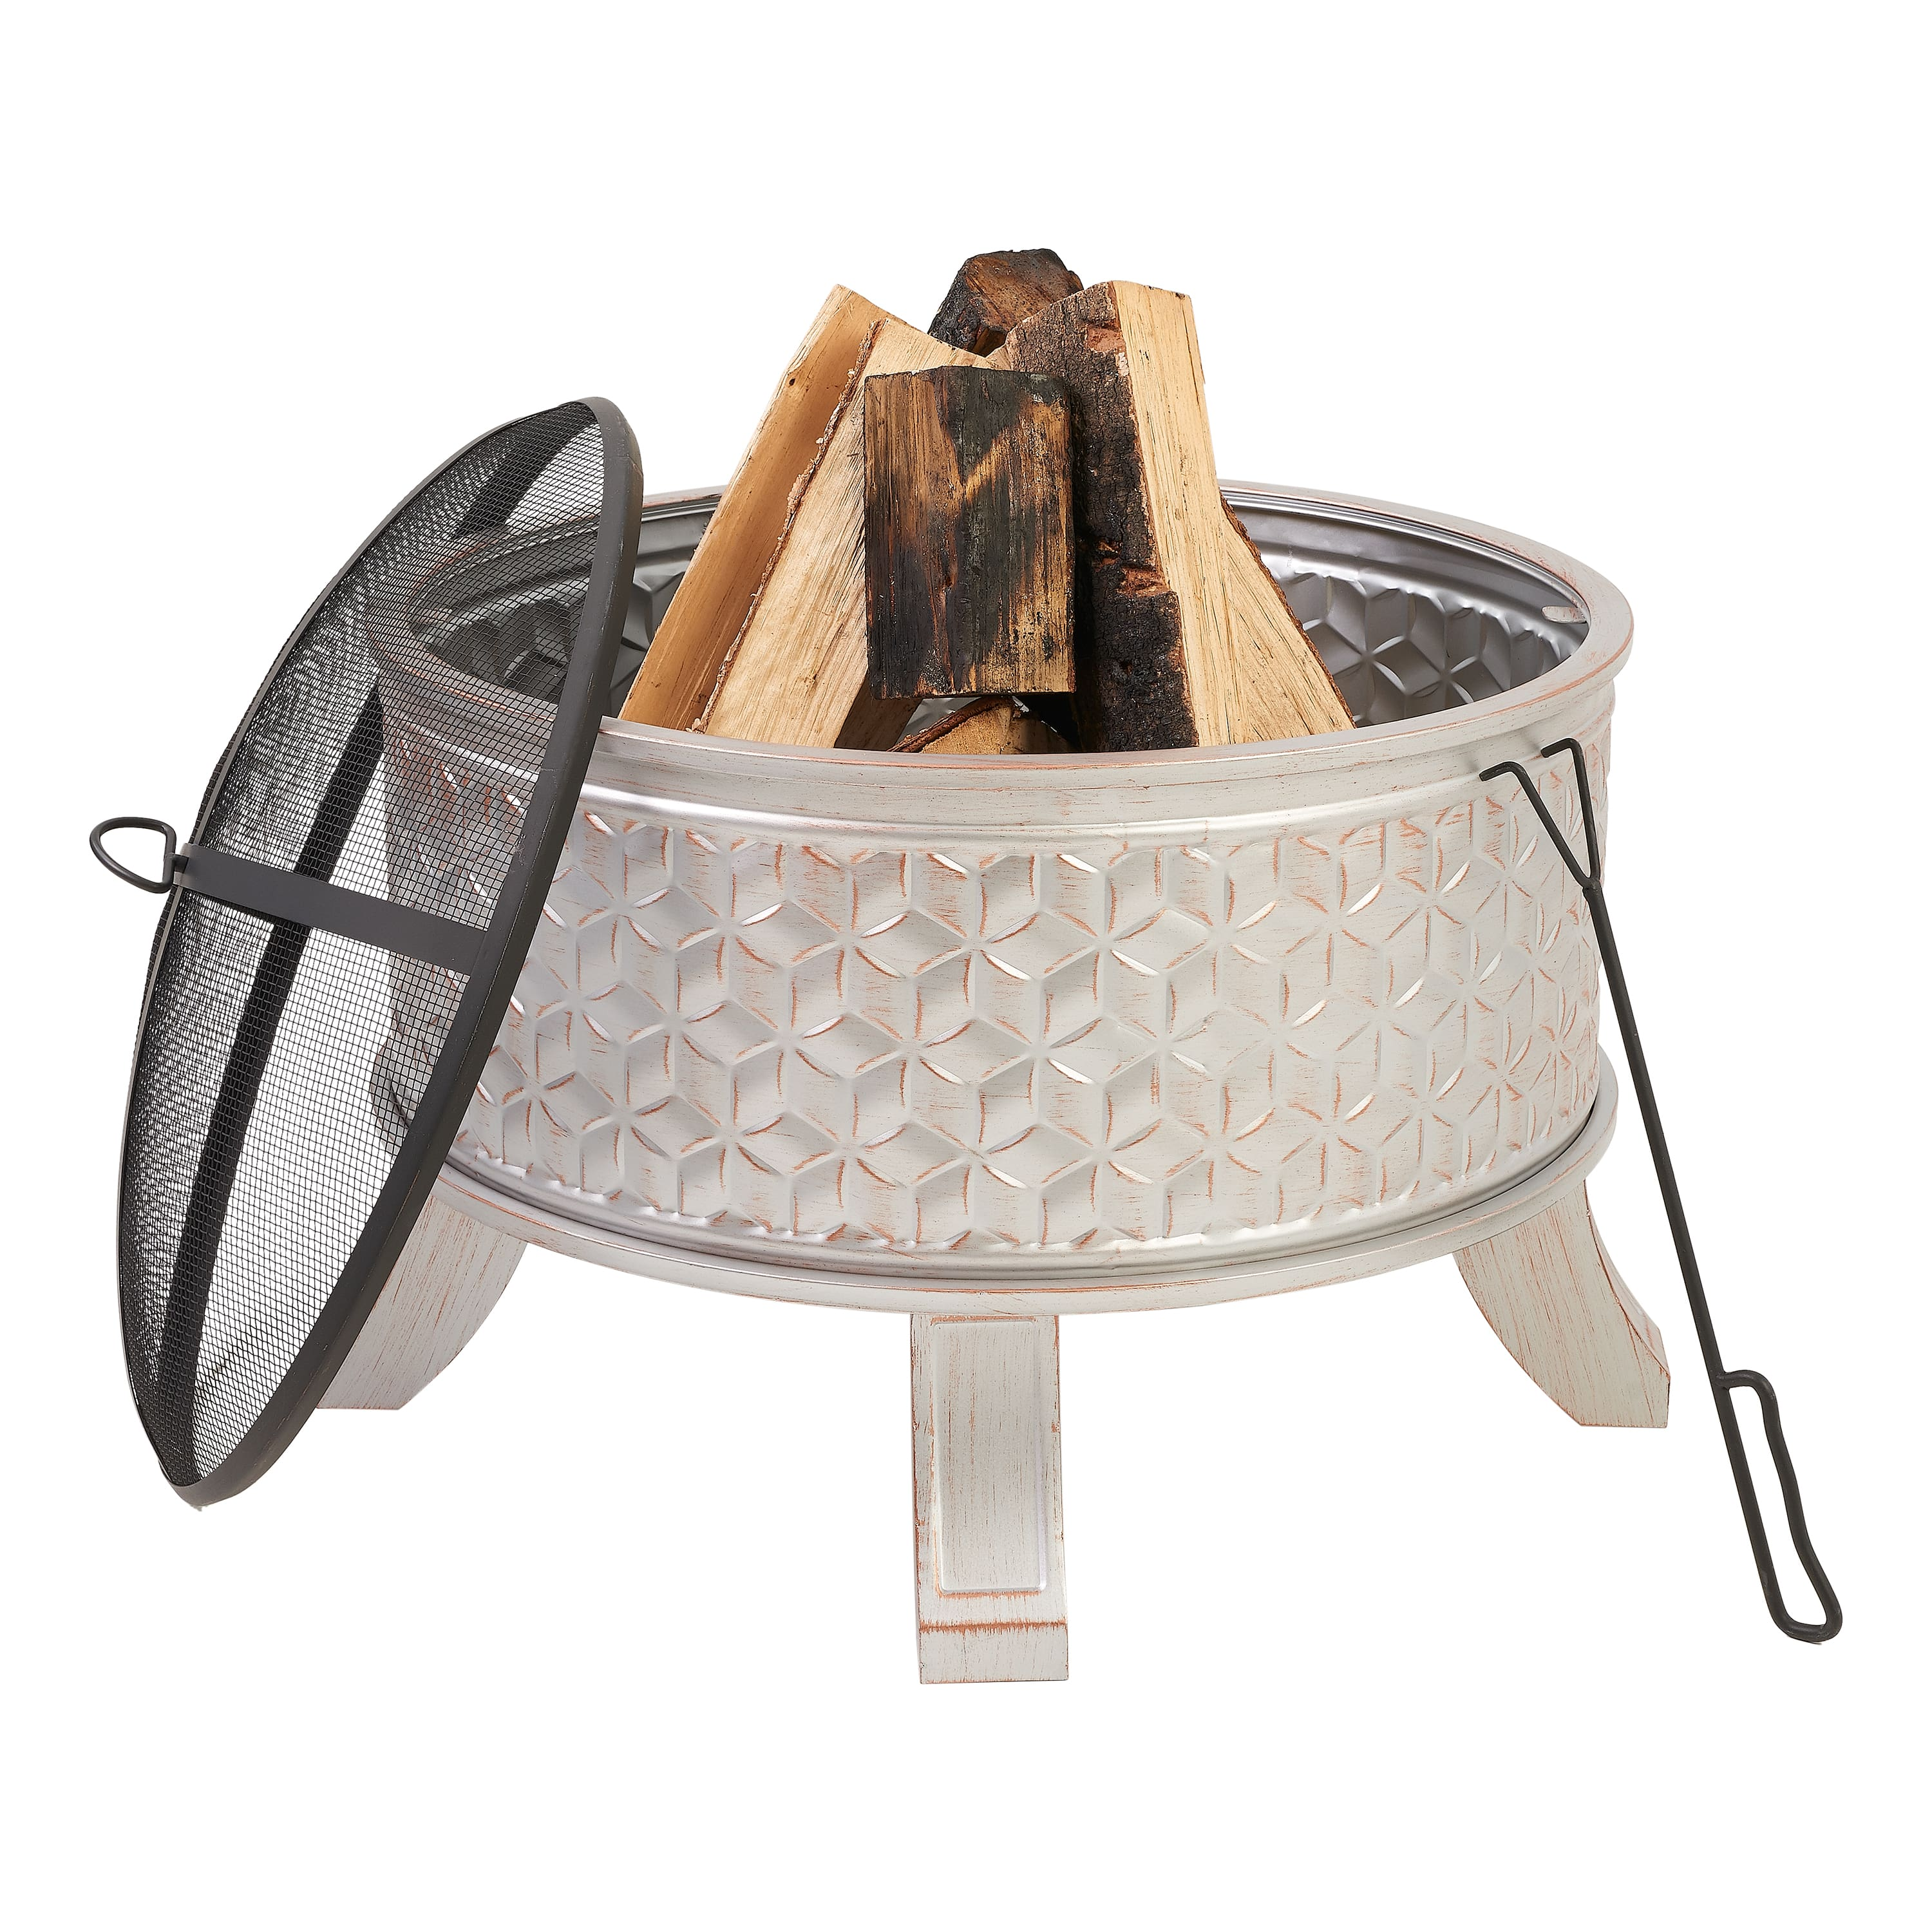 "Mainstays 26"" Steel Wood Burning Fire Pit w/ Mesh Spark Guard $38.64 + Free Shipping"